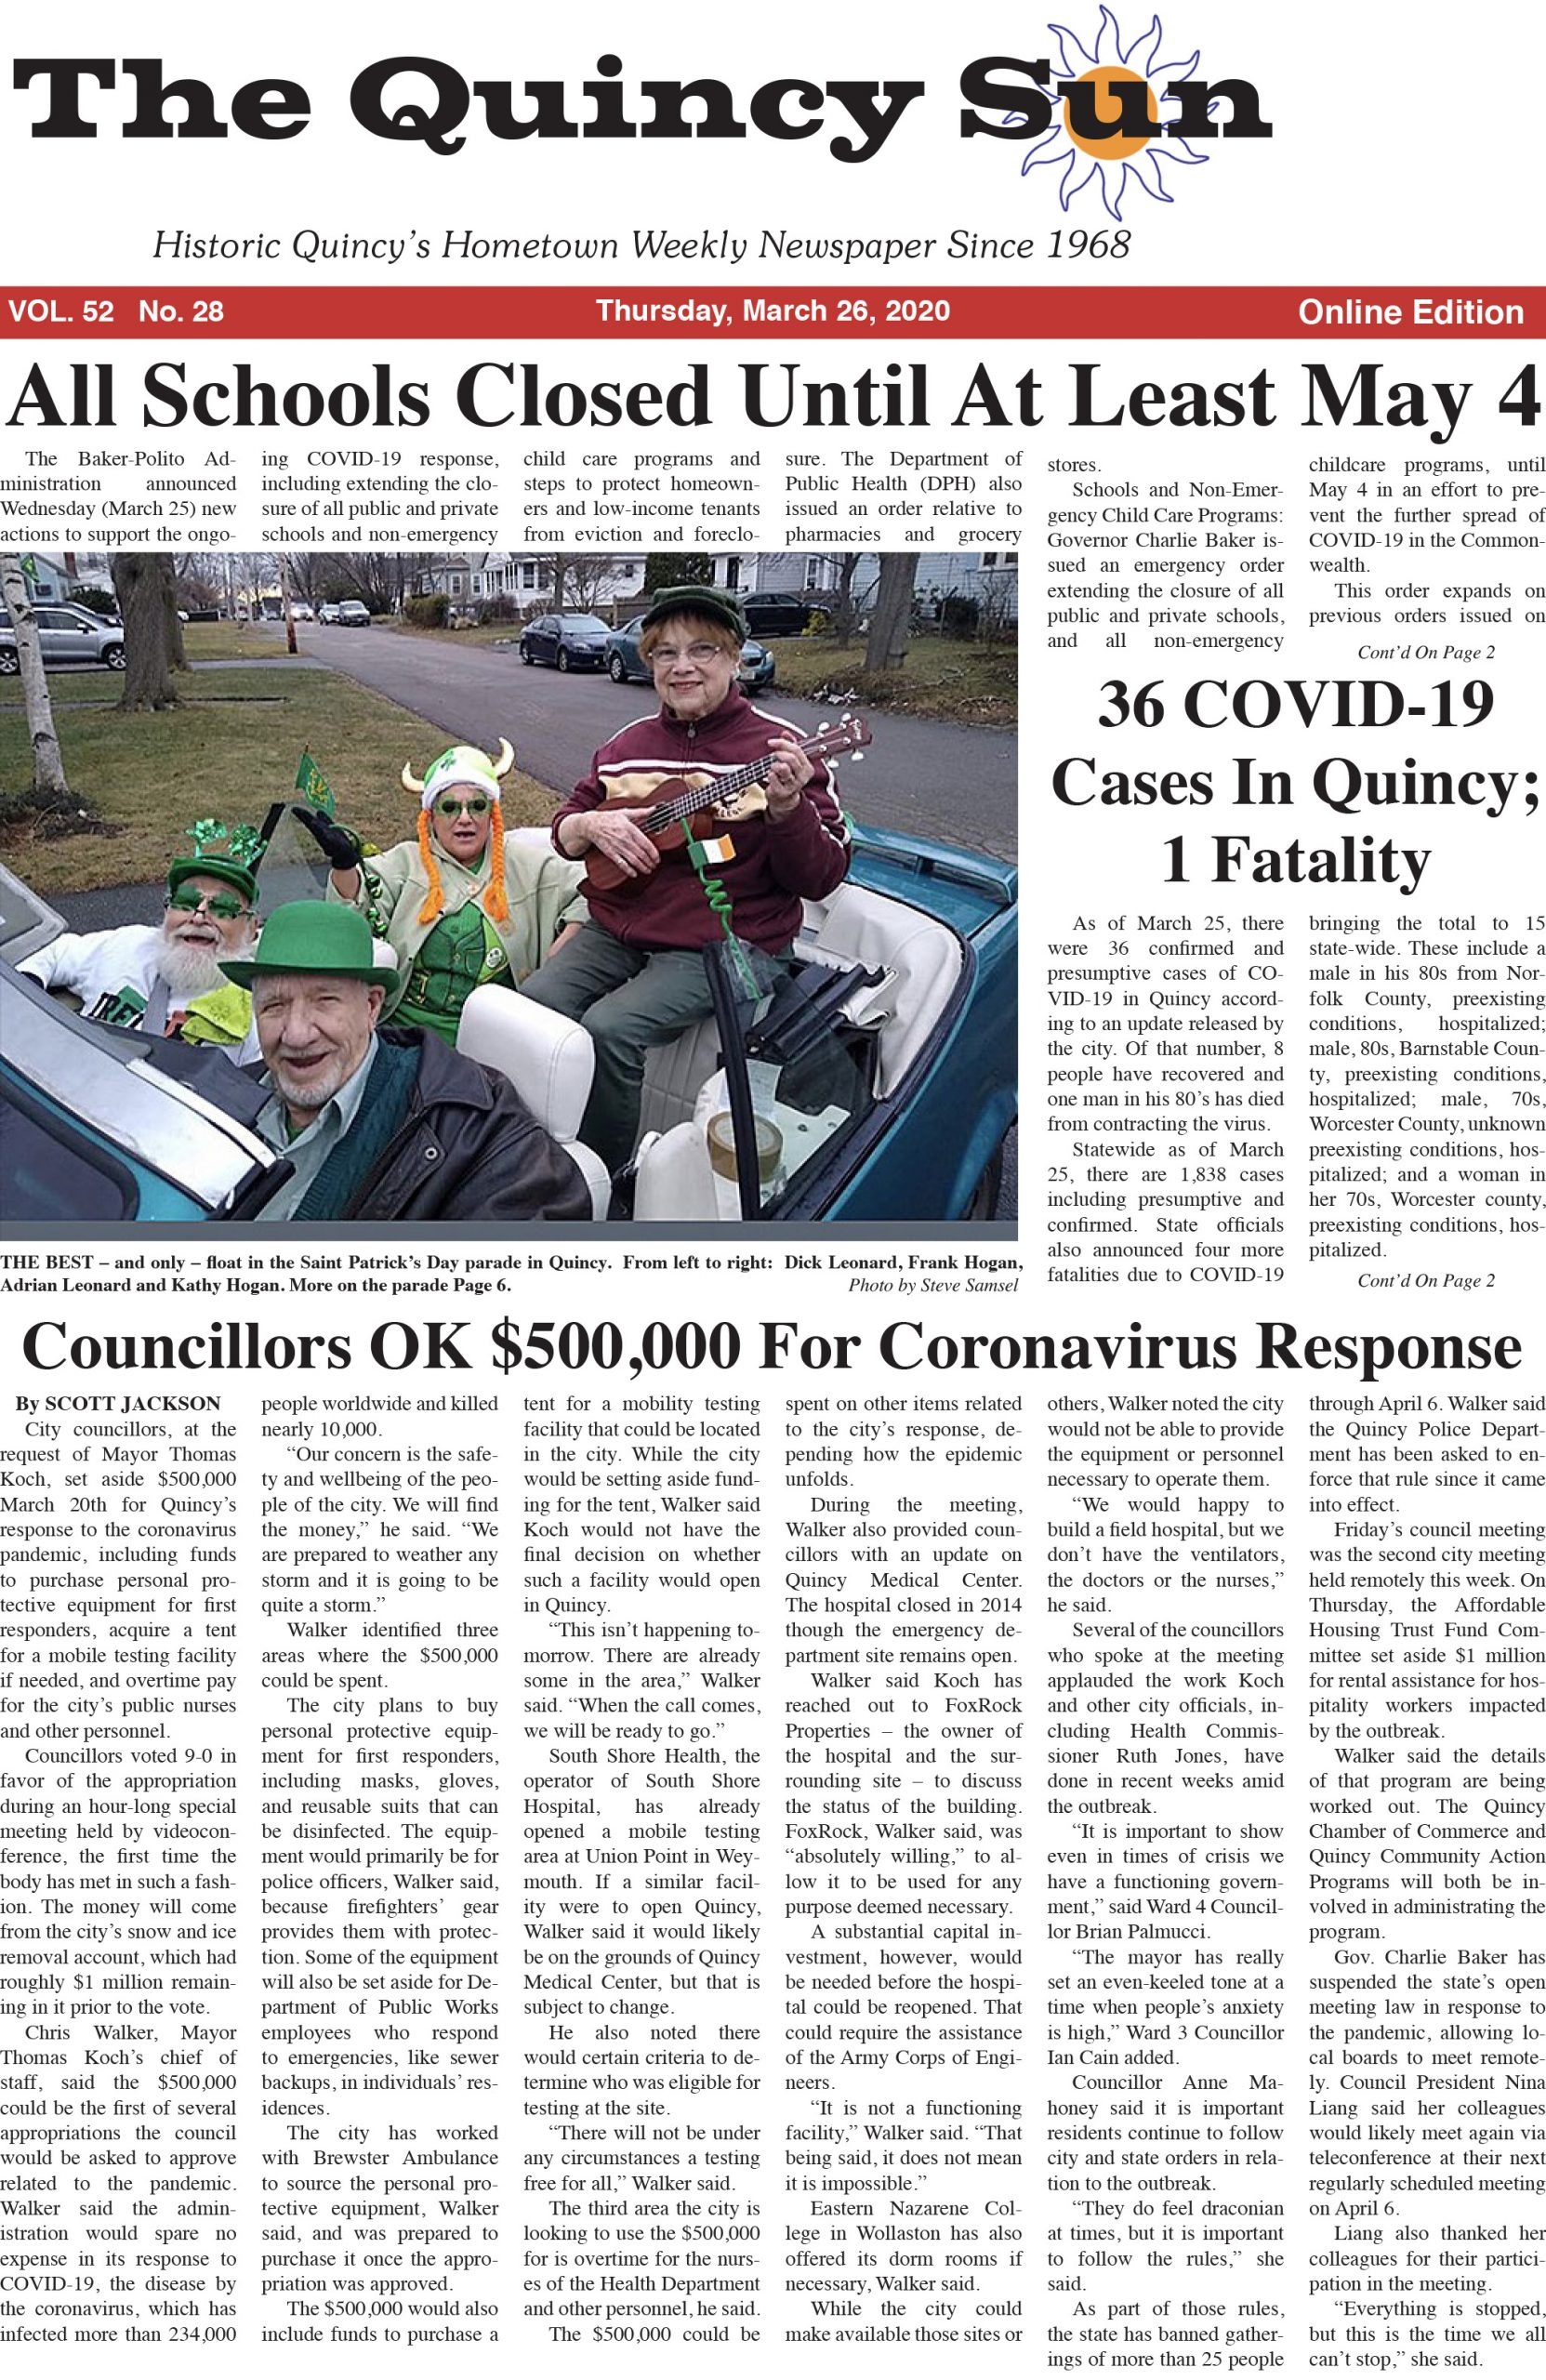 The Quincy Sun - March 26, 2020